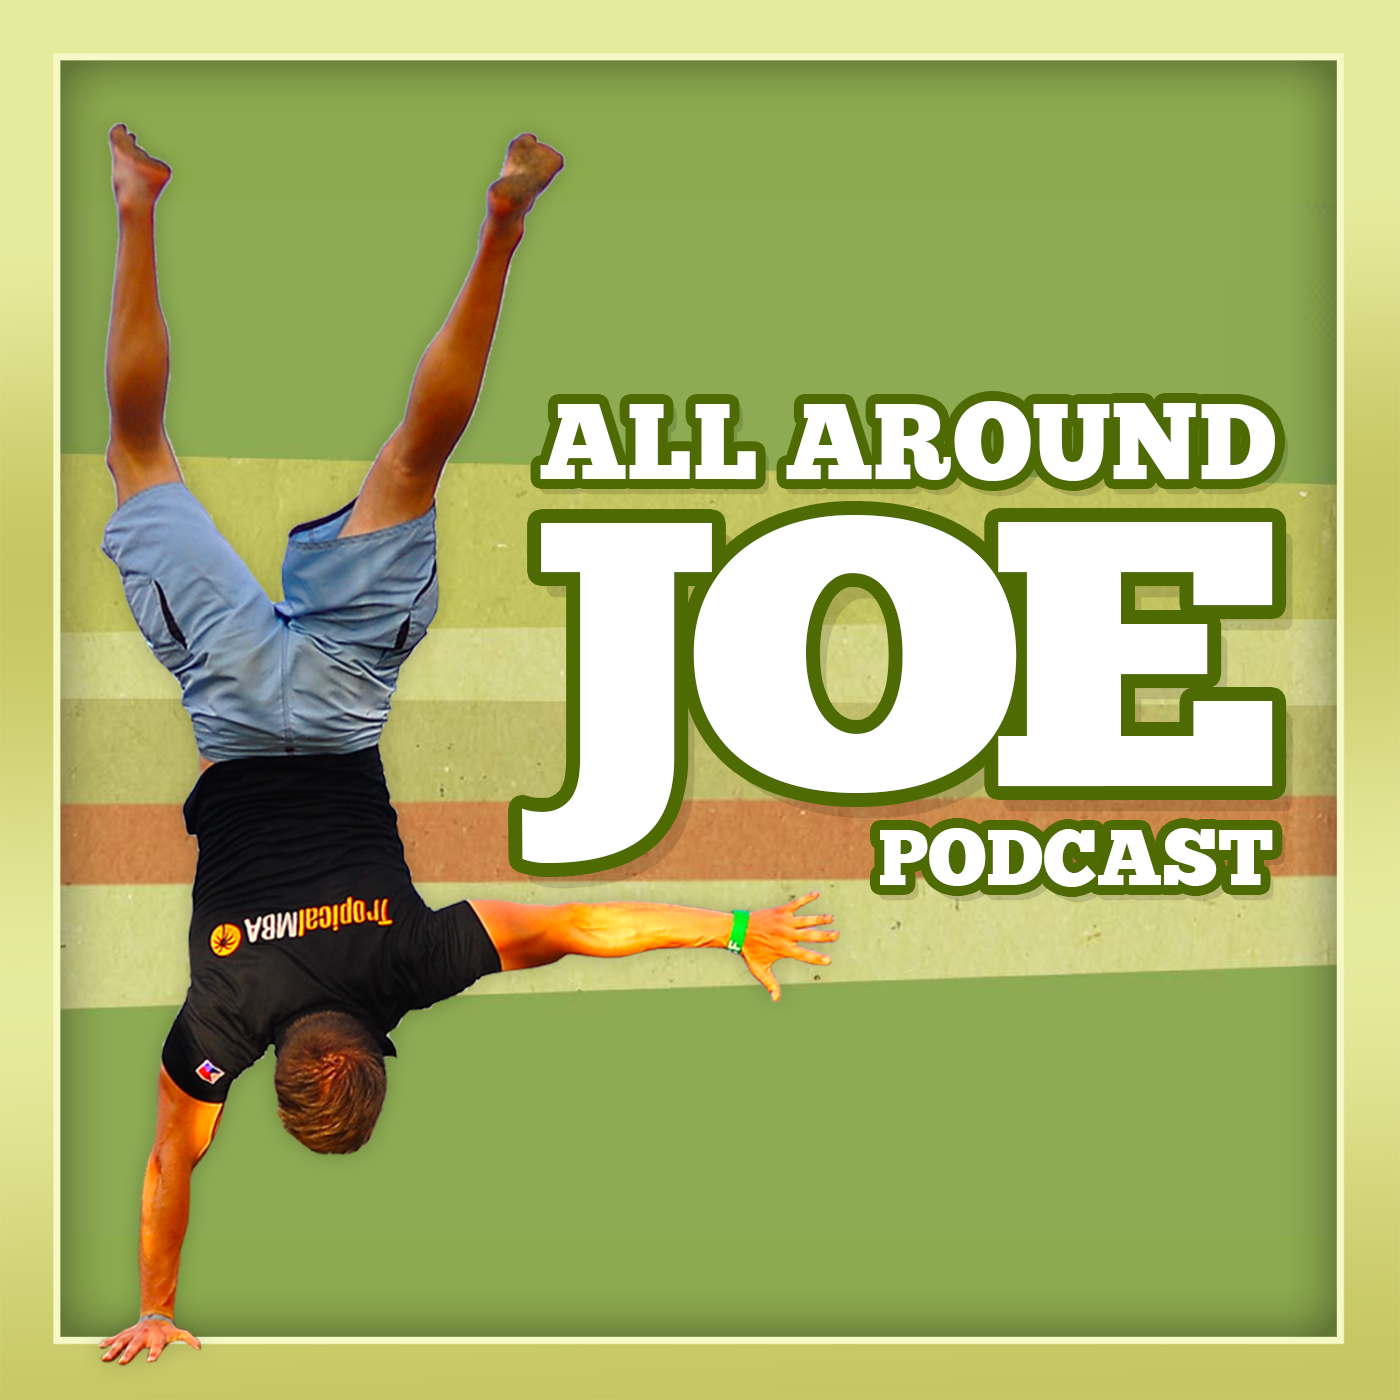 The AllAroundJoe Podcast: Fitness | CrossFit